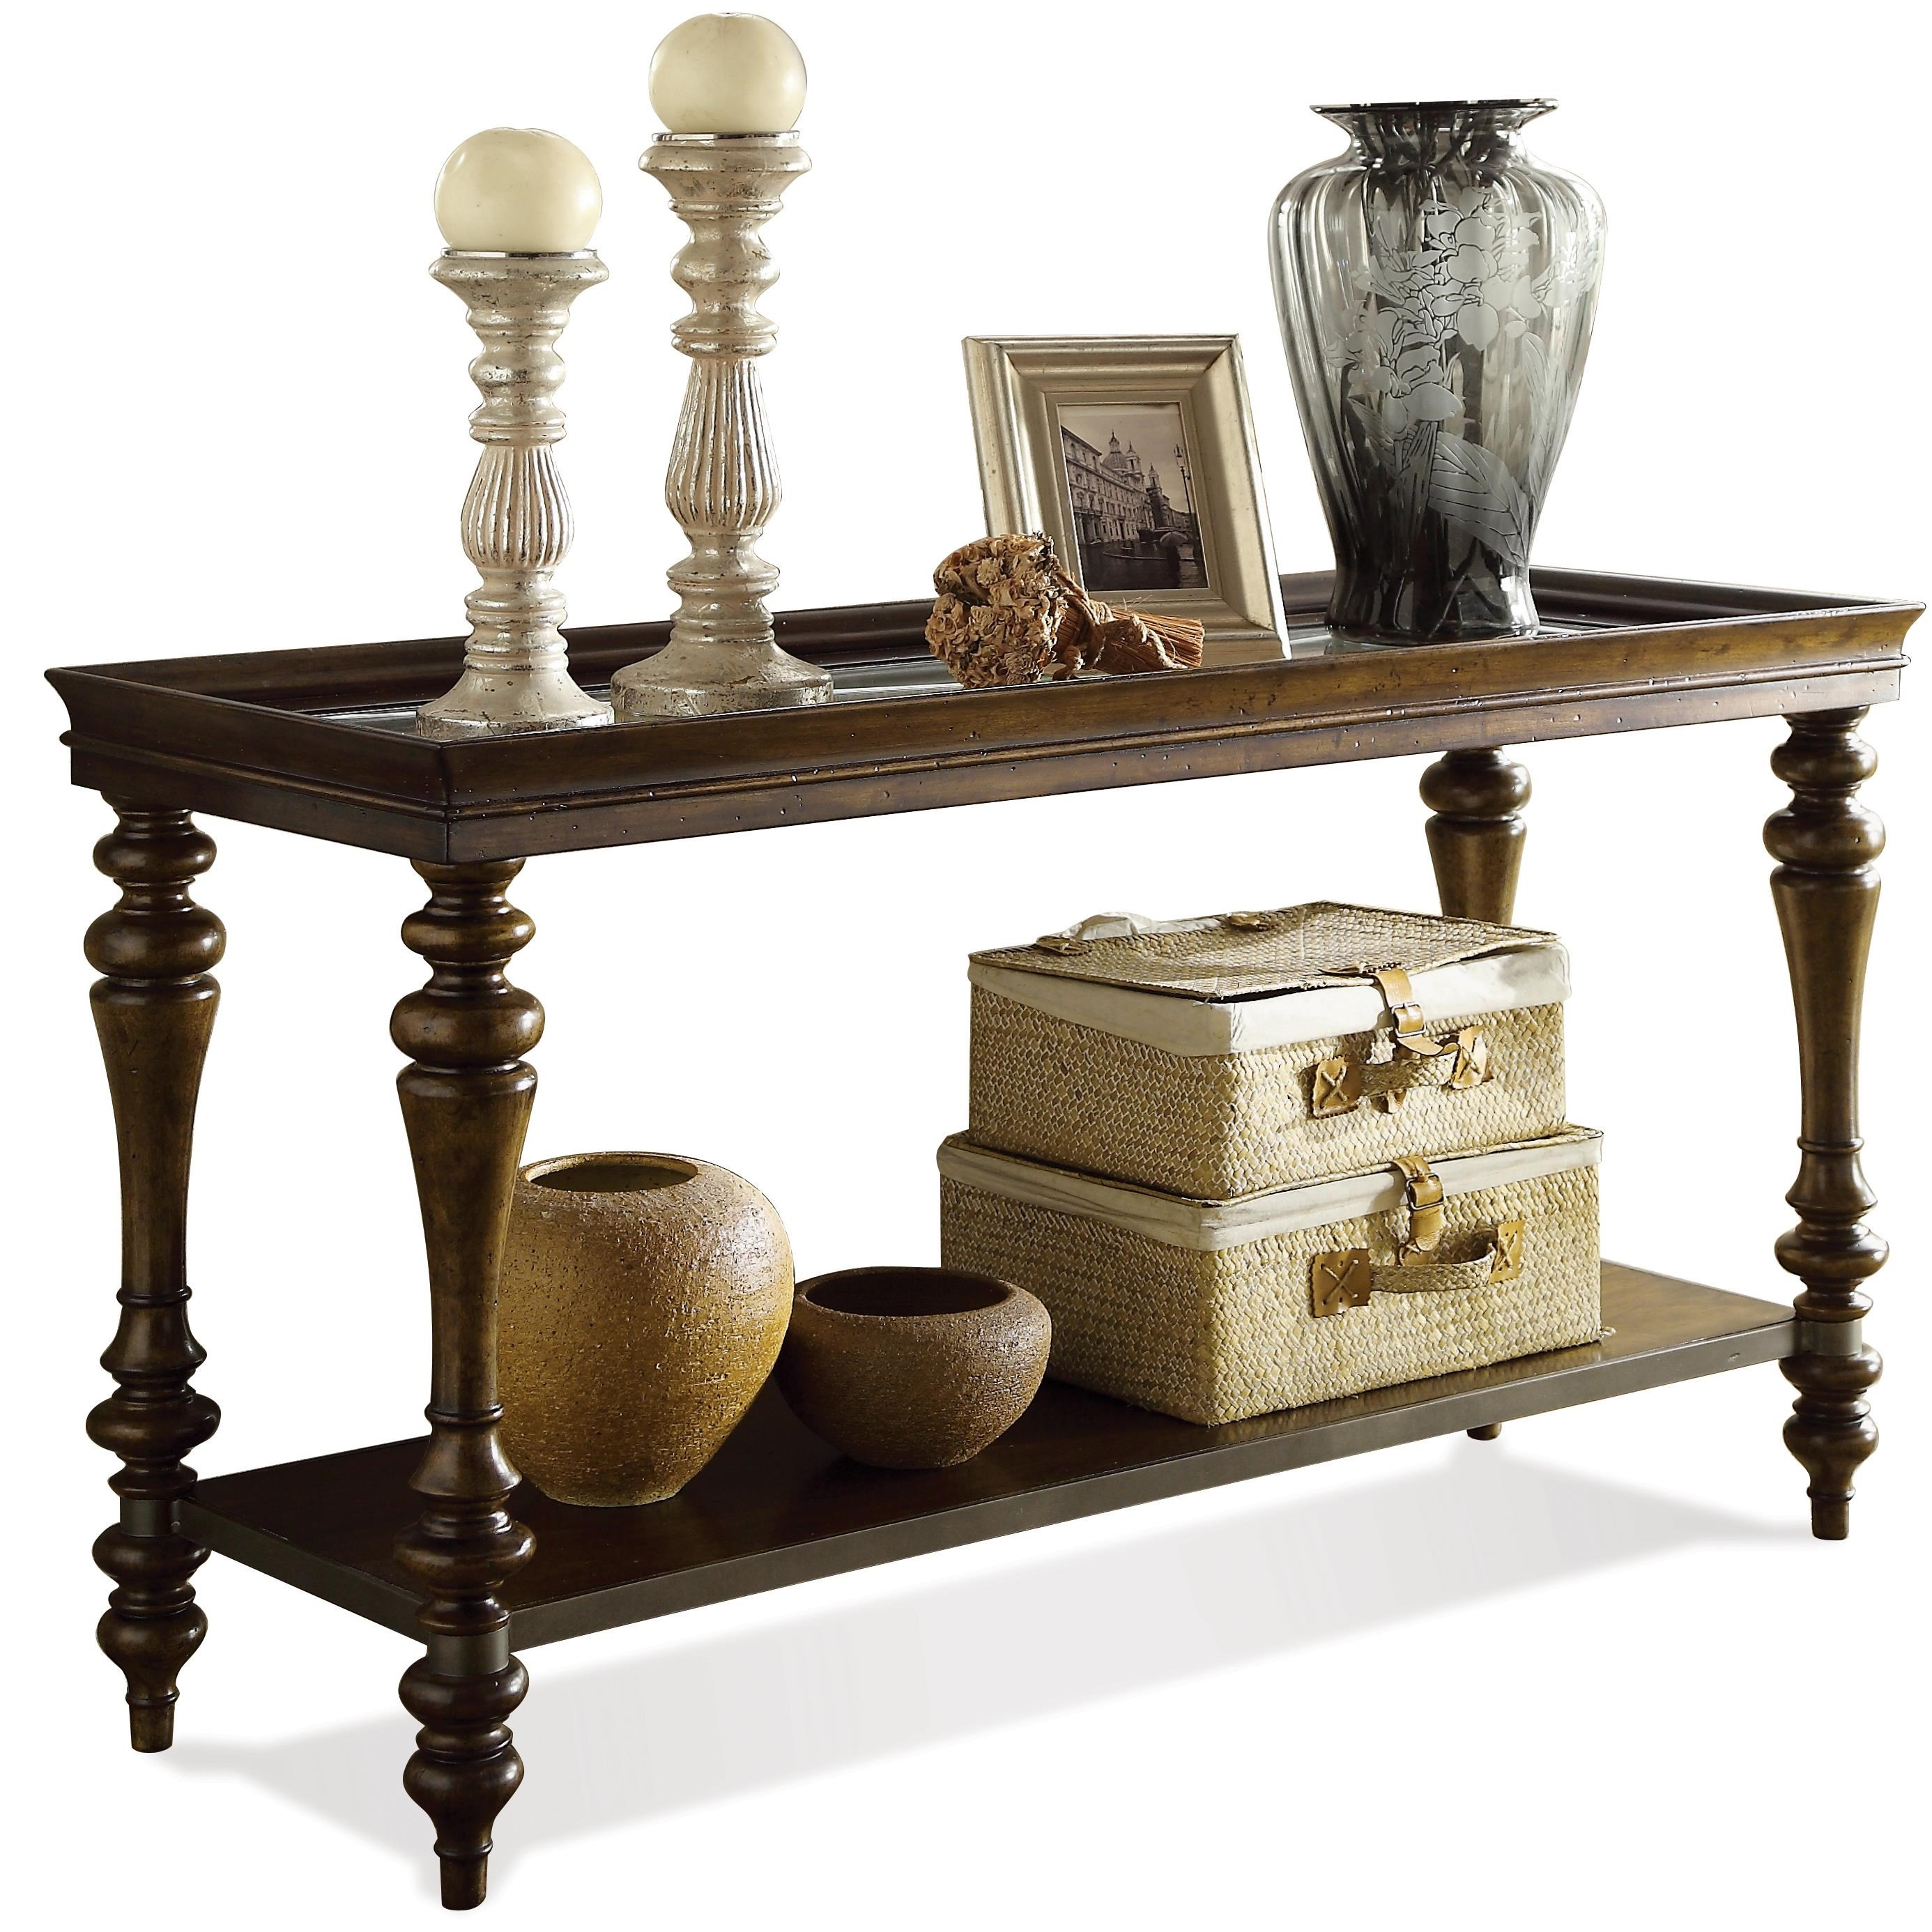 Riverside Furniture Windermier Sofa Table Hudson S Furniture Sofa Tables Consoles Tampa St